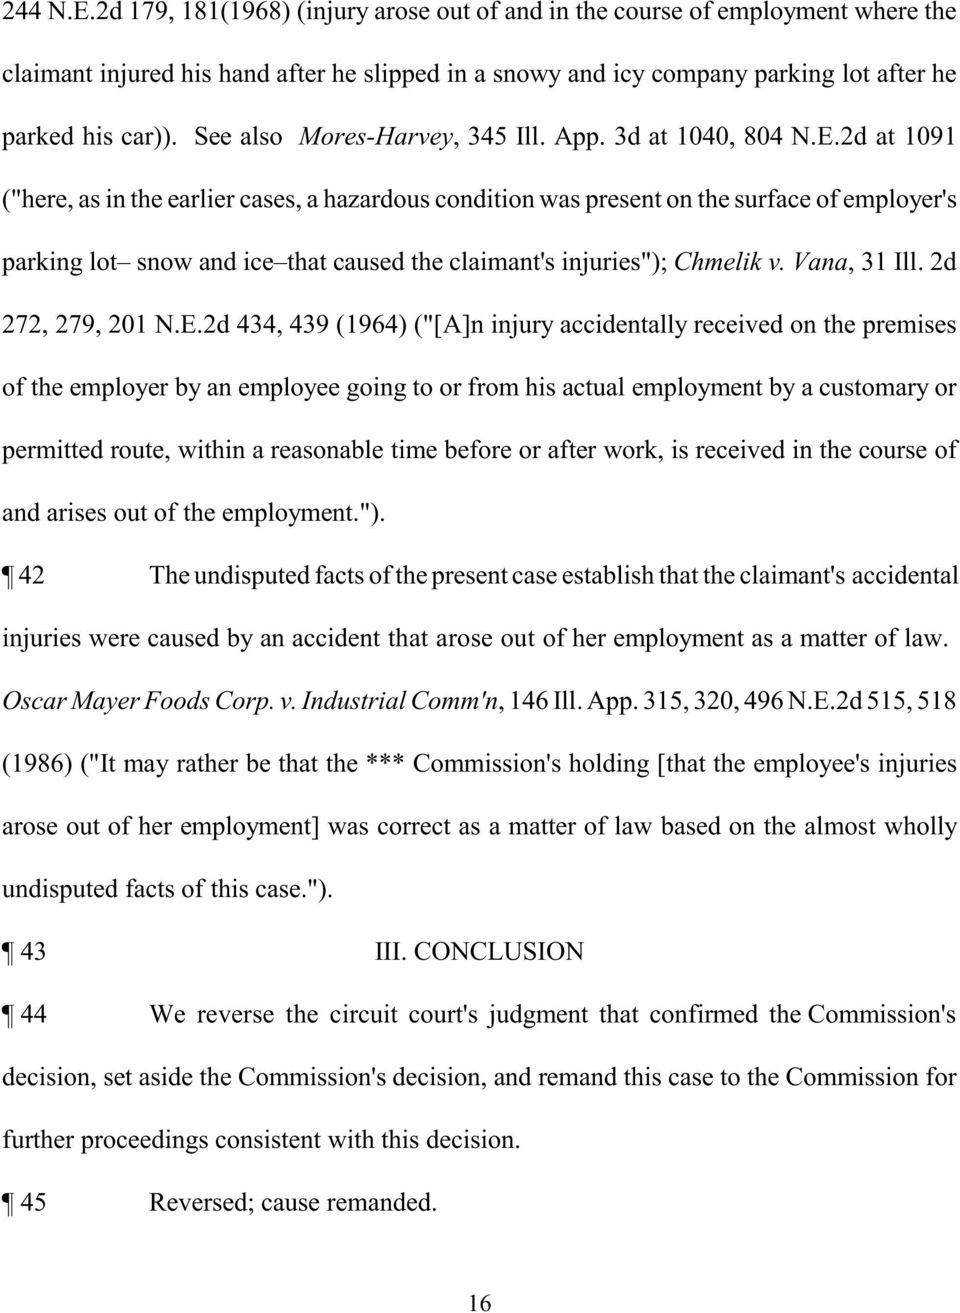 "2d at 1091 (""here, as in the earlier cases, a hazardous condition was present on the surface of employer's parking lot snow and ice that caused the claimant's injuries""); Chmelik v. Vana, 31 Ill."